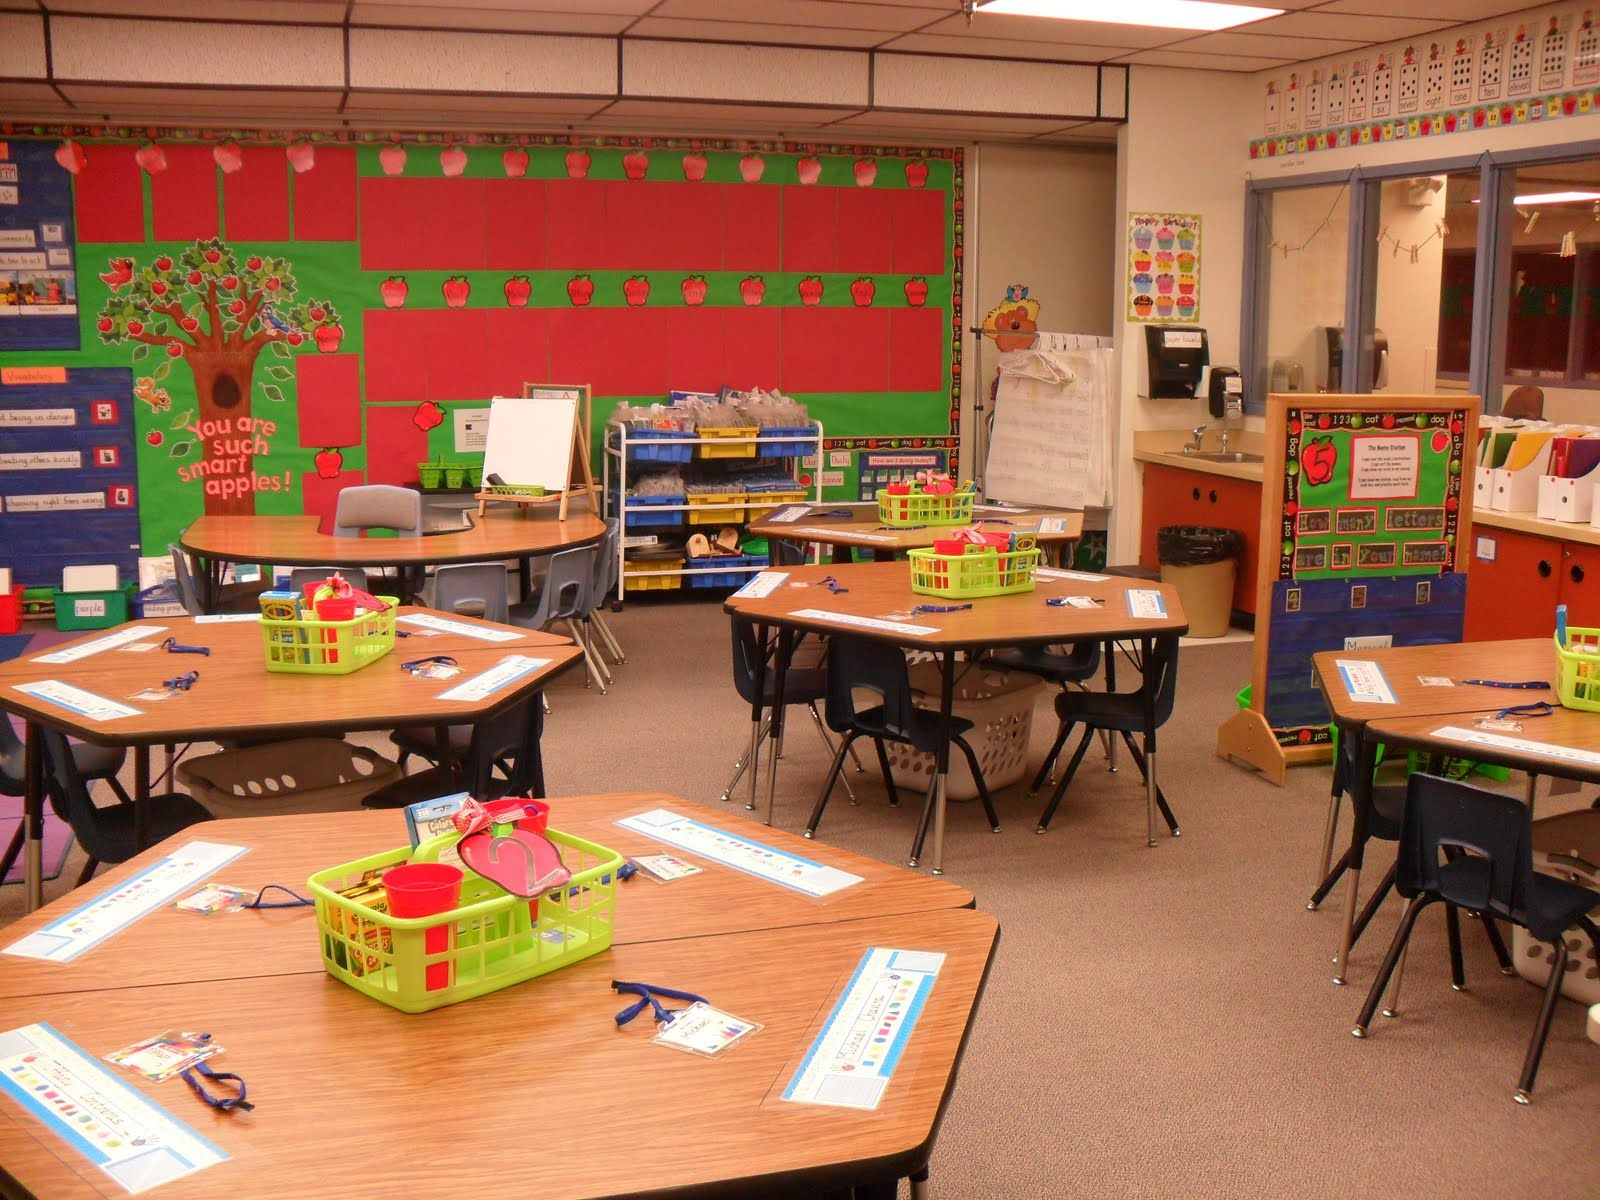 Classroom Design And Organization Ideas ~ Classroom set up love the laundry baskets for storage